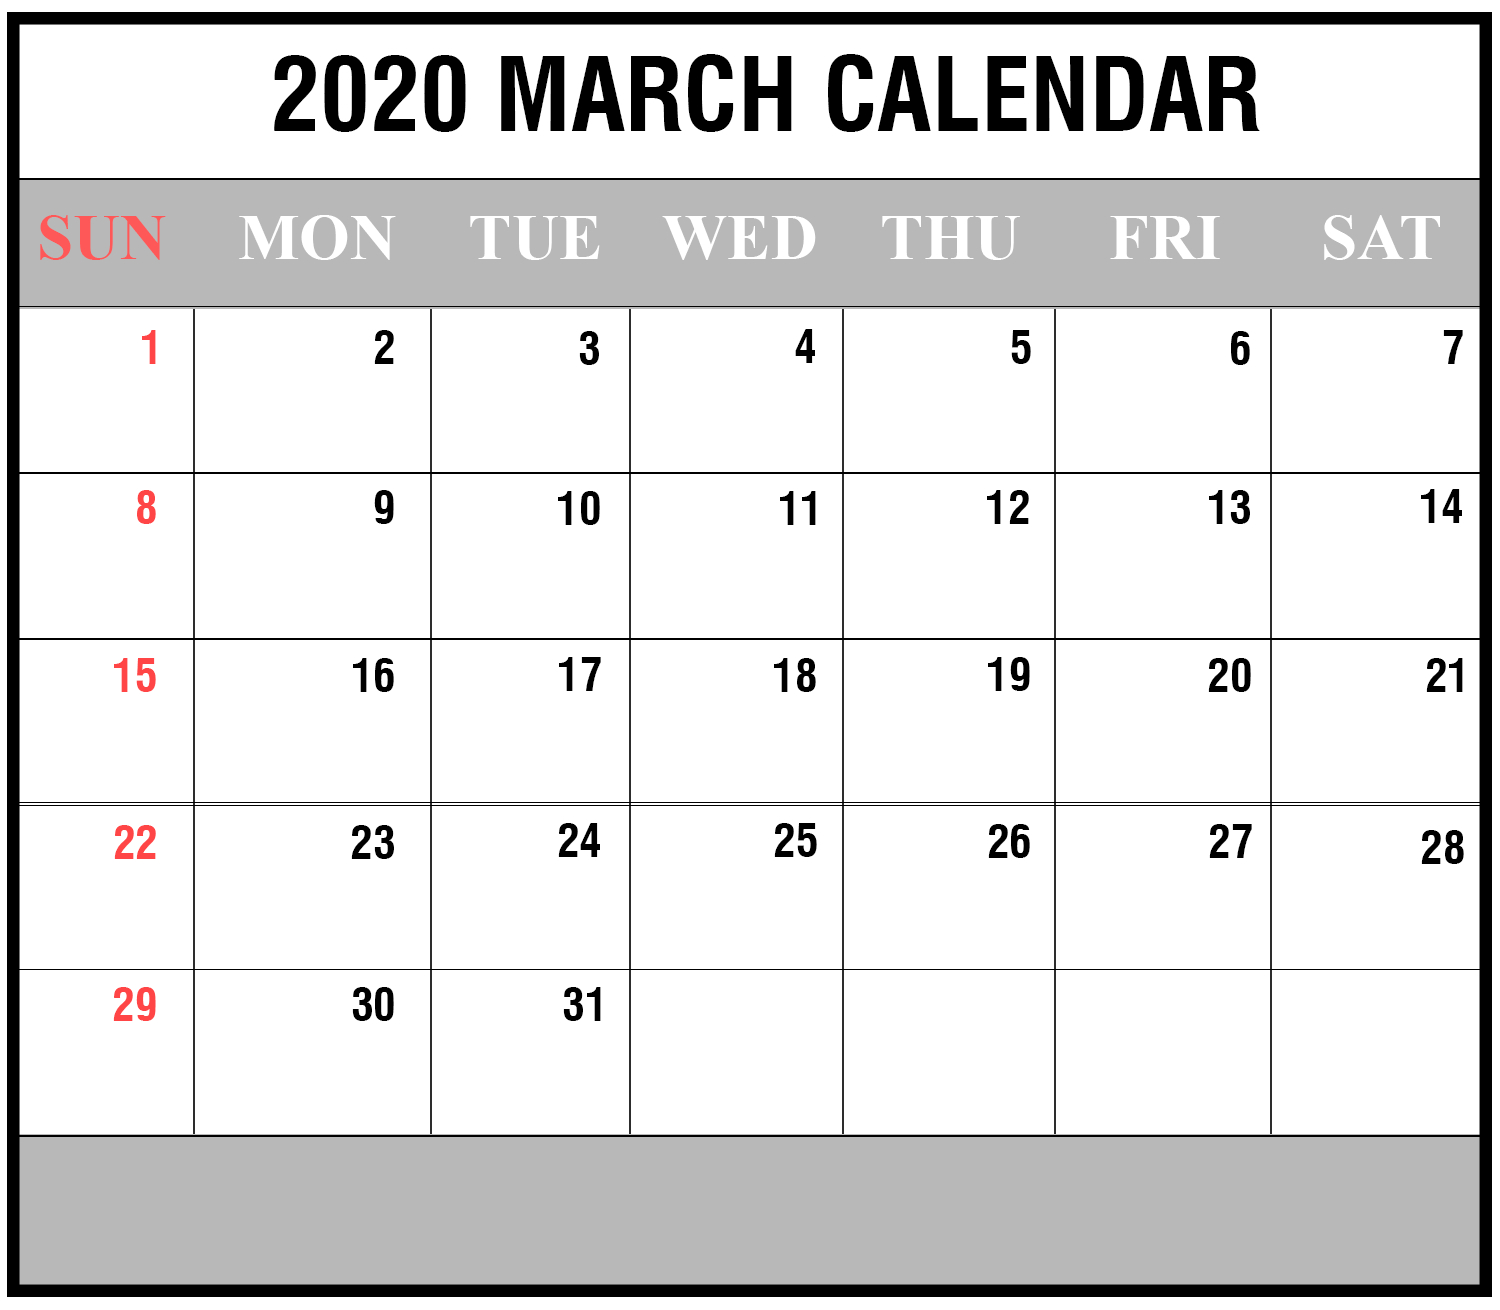 Free March 2020 Calendar Template | Printable February Calendar To Fill In And Print